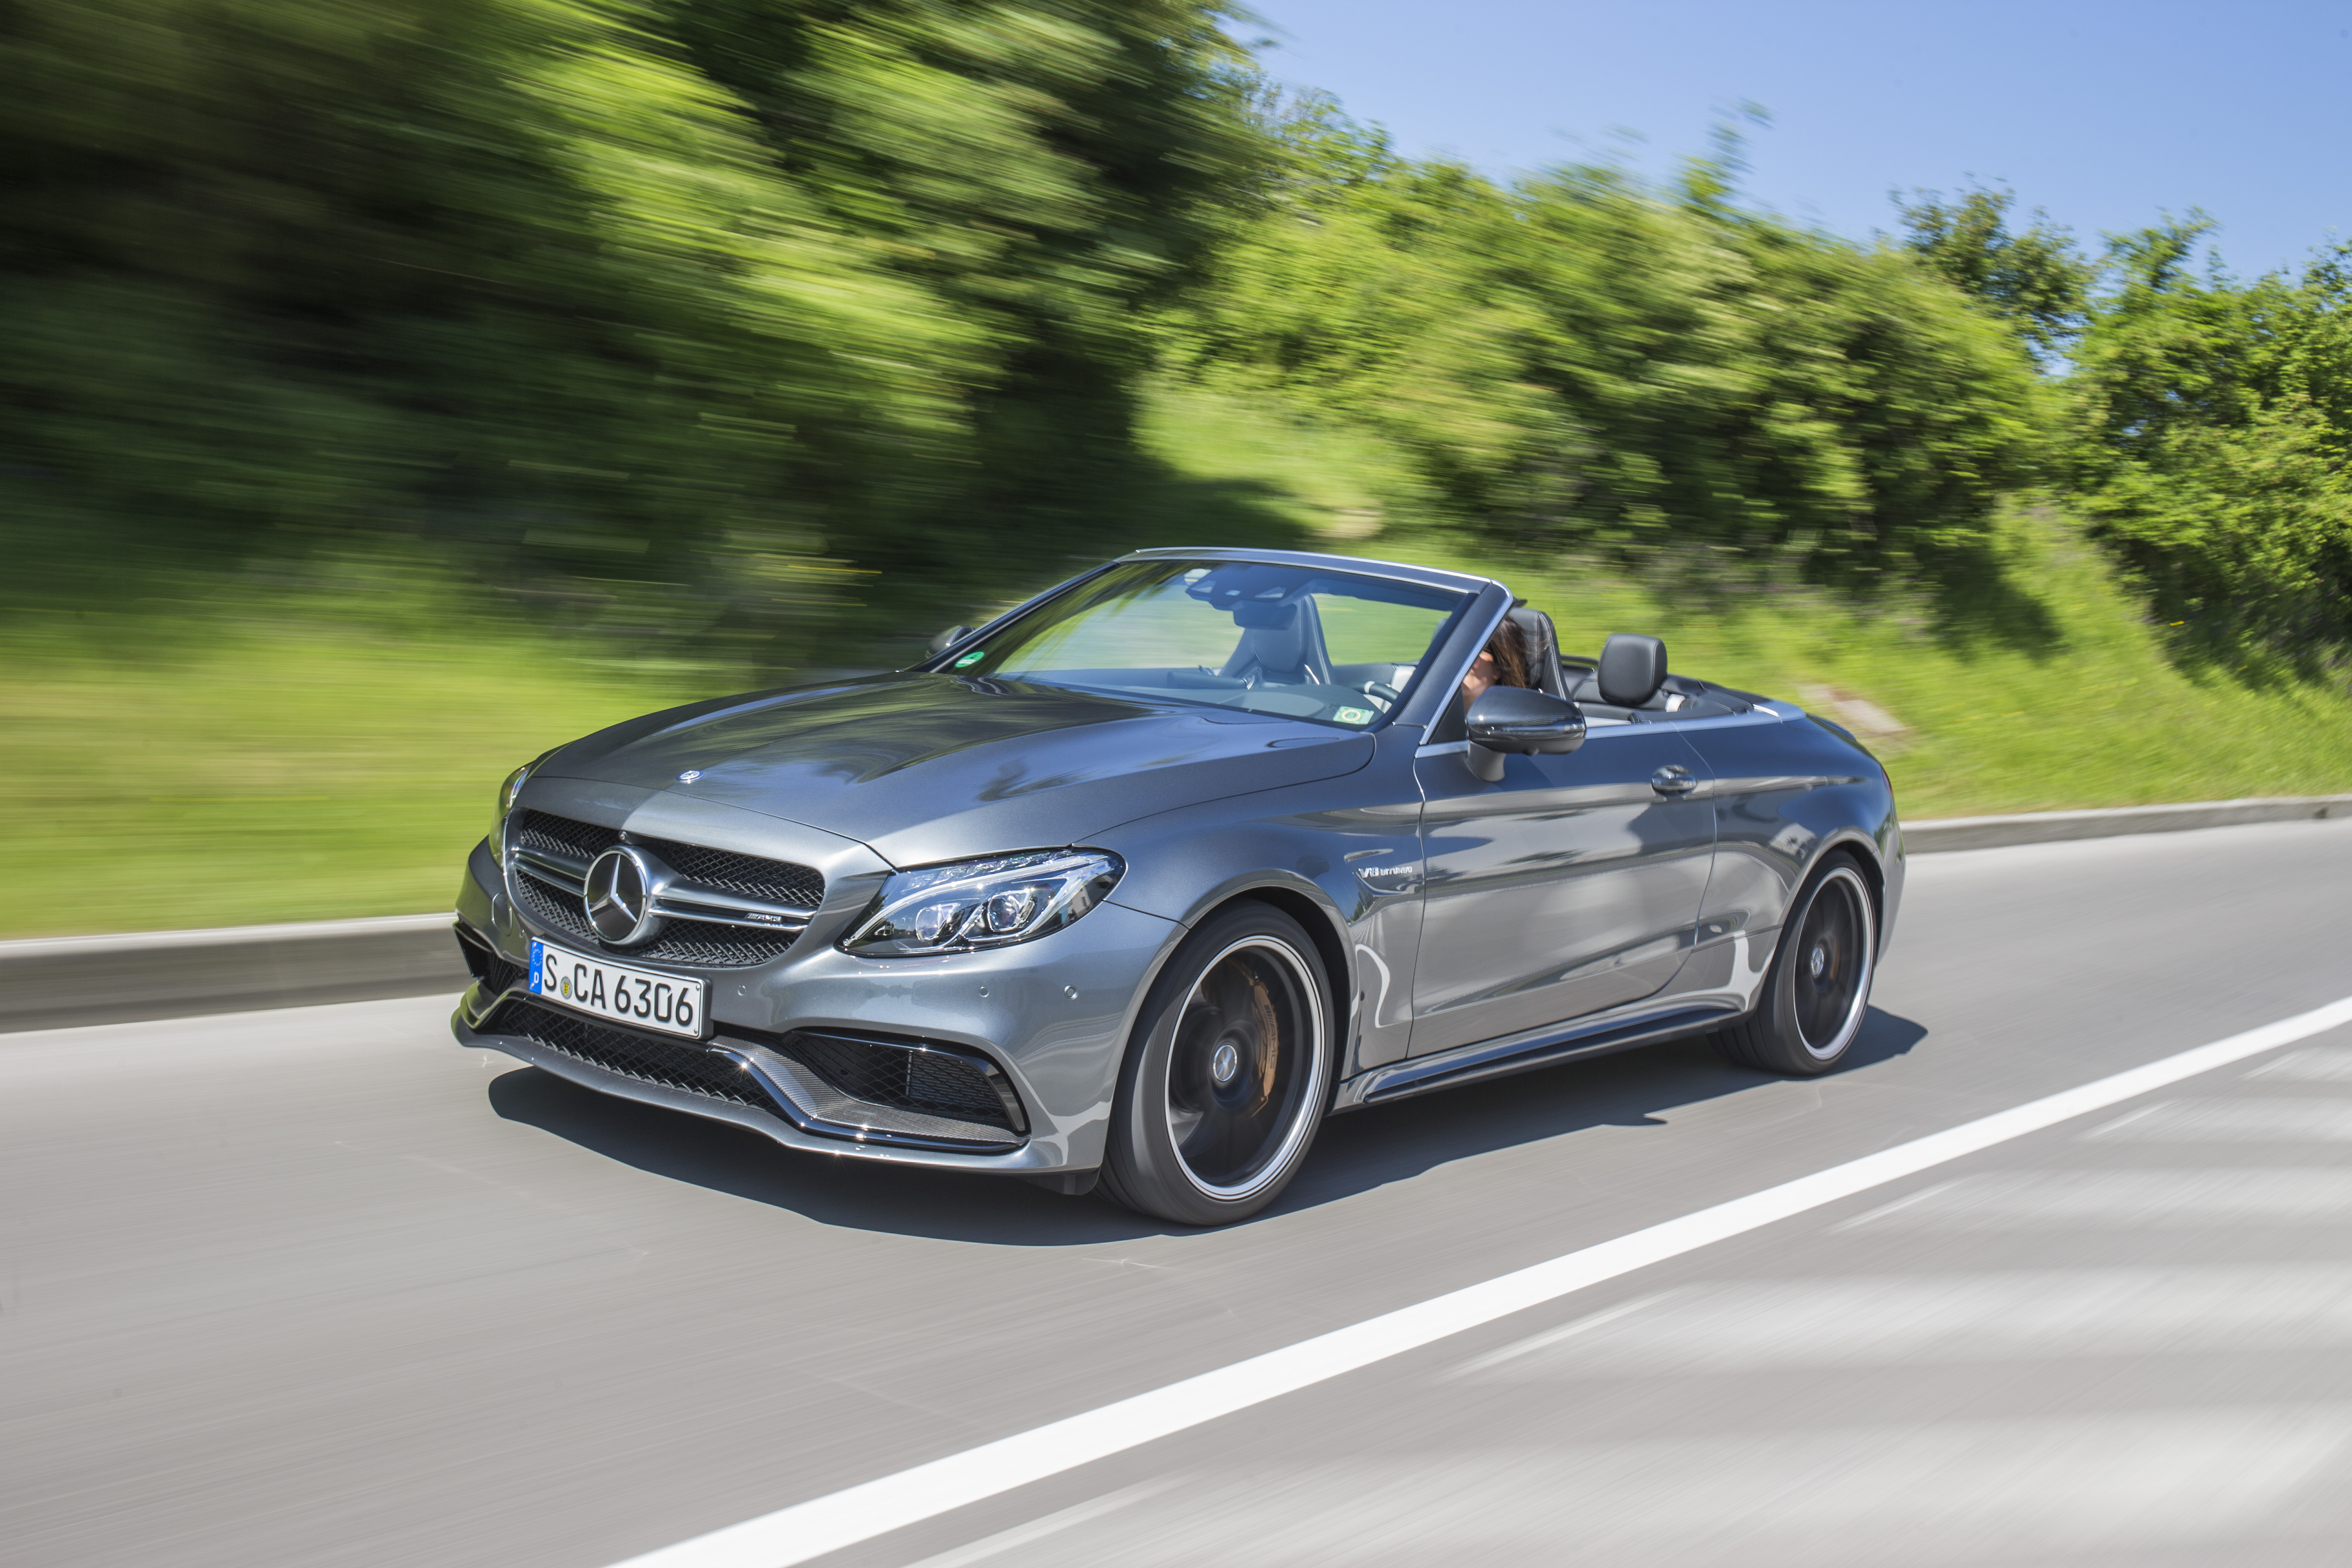 2017 mercedes amg c63 s c43 cabriolet review caradvice for Mercedes benz c63 2017